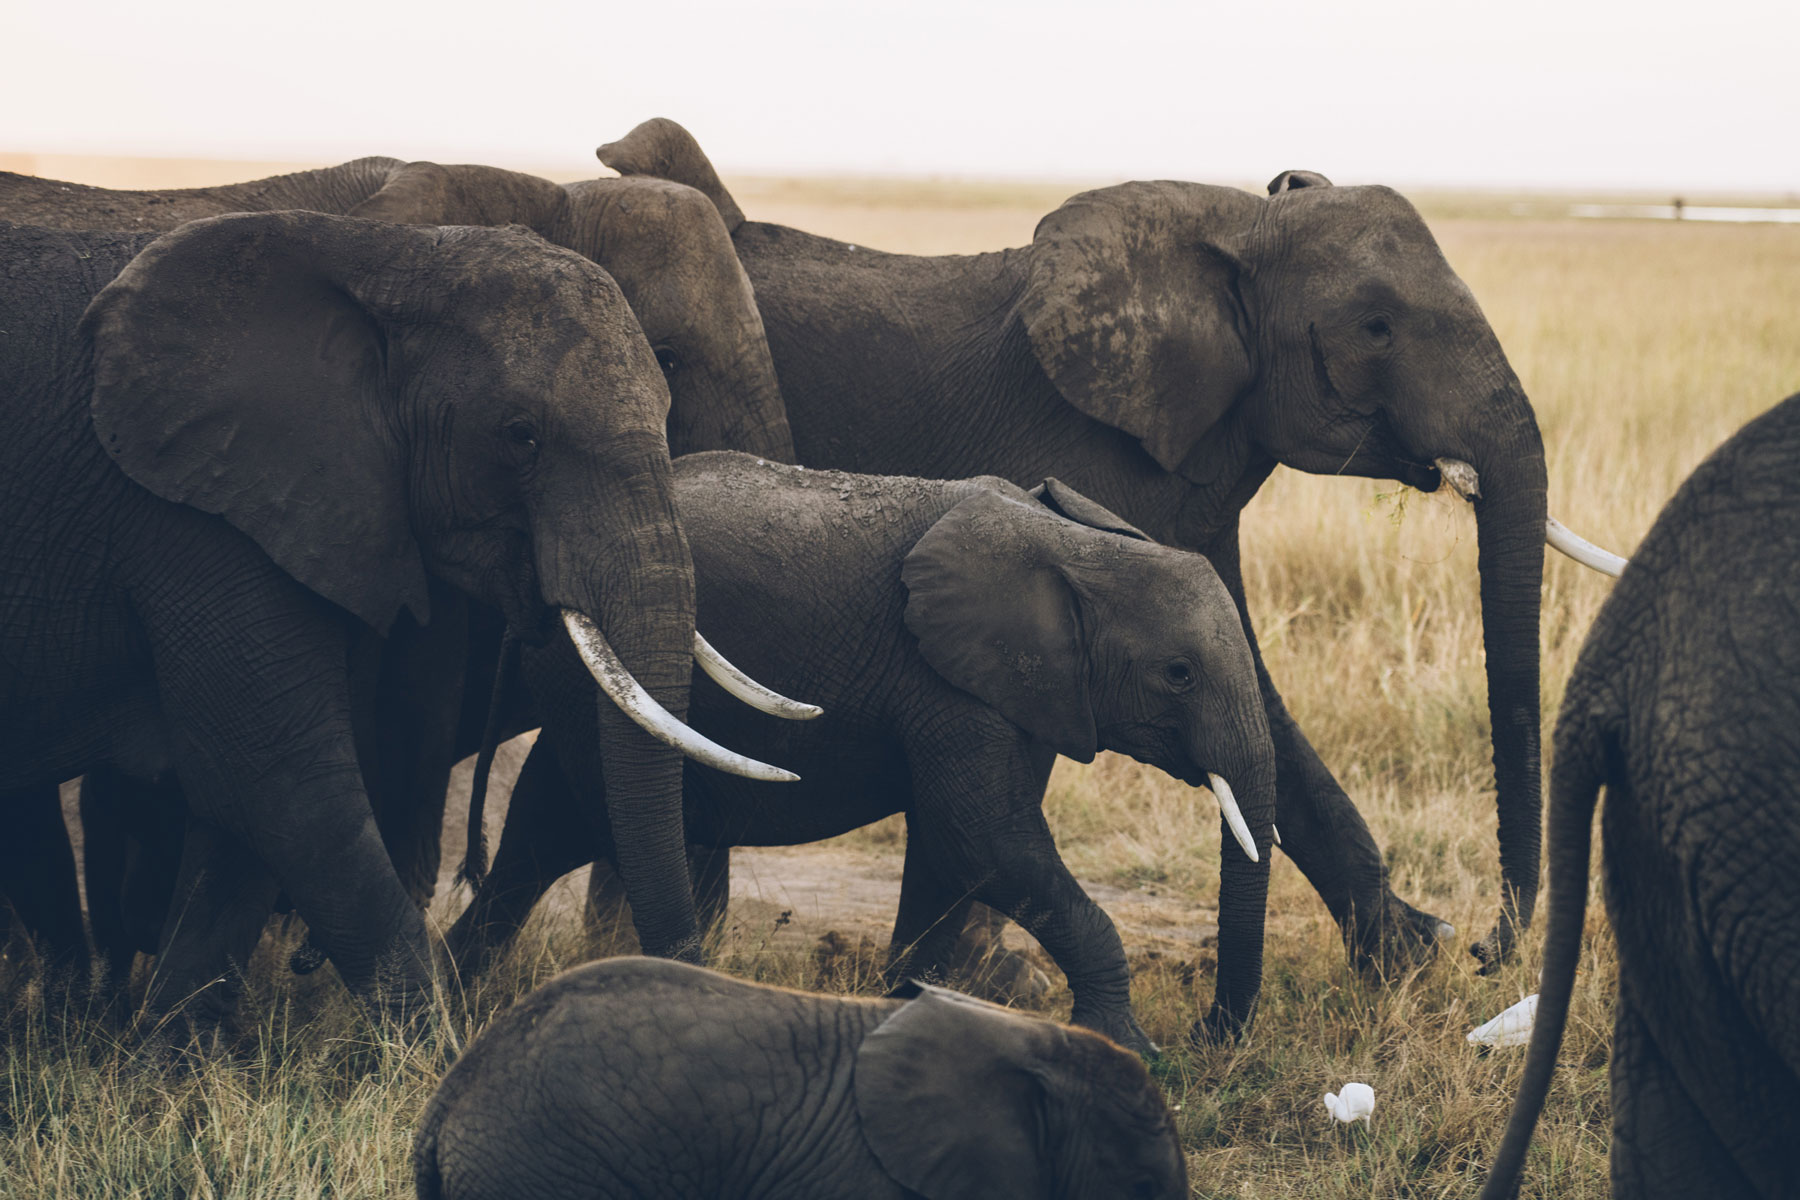 Troupeau d'Eléphants, Parc National Amboseli, Kenya